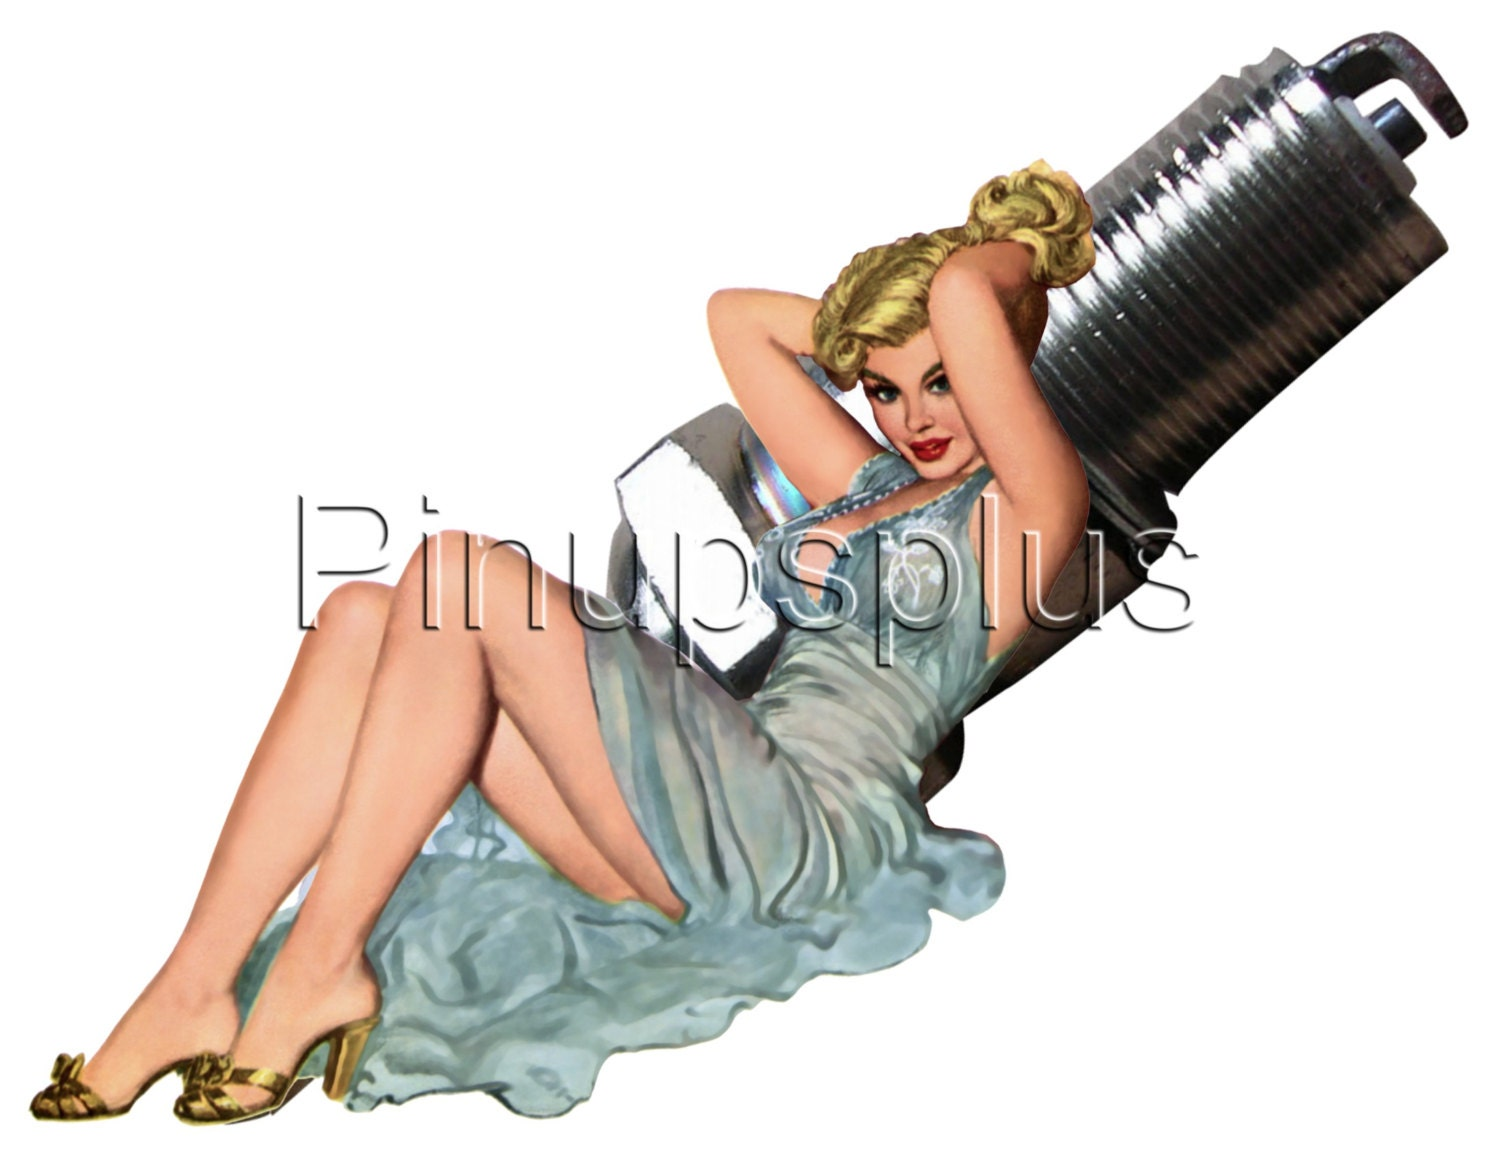 retro spark plug pinup girl waterslide decal for guitars etc. Black Bedroom Furniture Sets. Home Design Ideas